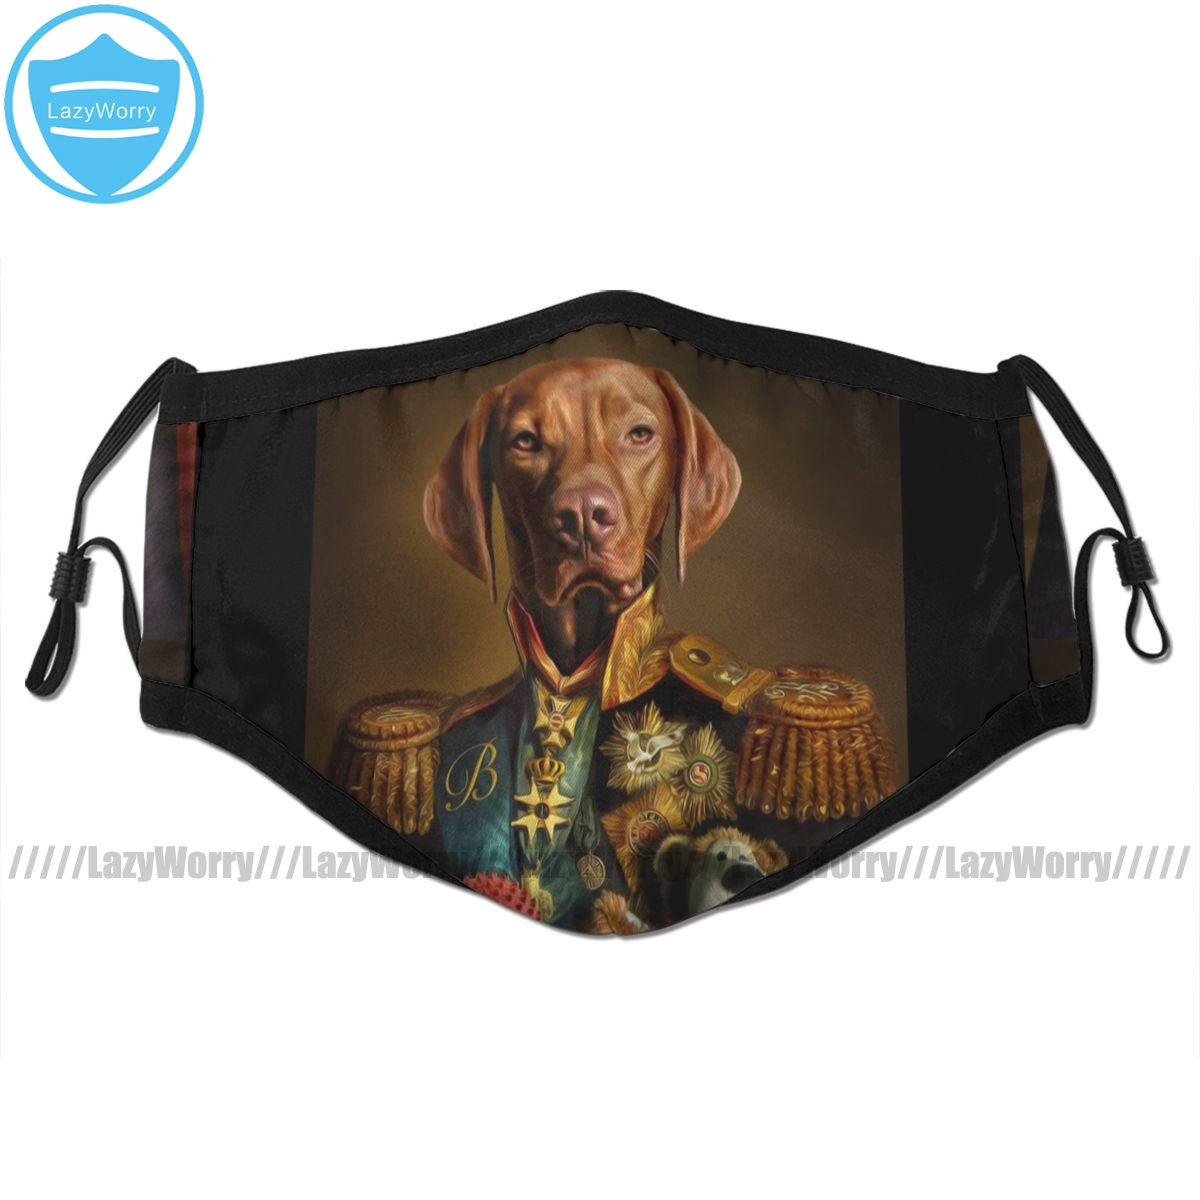 Vizsla Dog Mouth Face Mask Bertie The Hungarian Vizsla Facial Mask Fashion Cool With 2 Filters For Adult